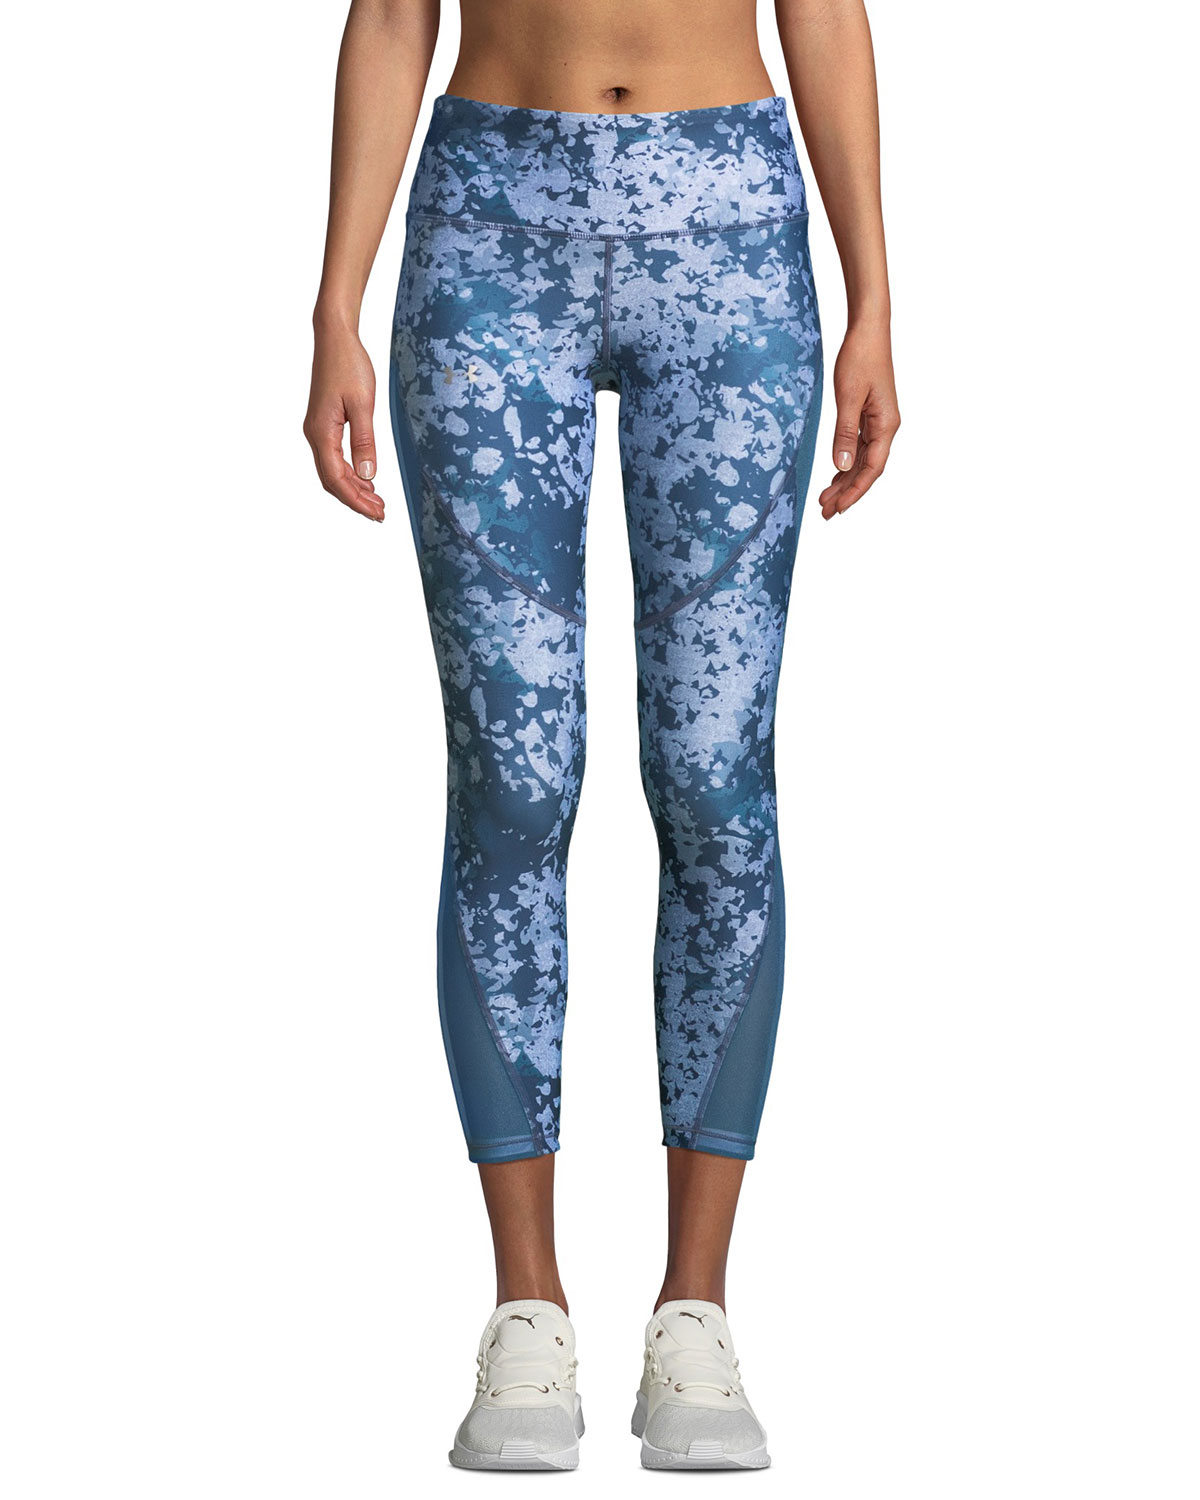 84d0fbdb26f8 Under Armour HeatGear Printed Cropped Performance Leggings